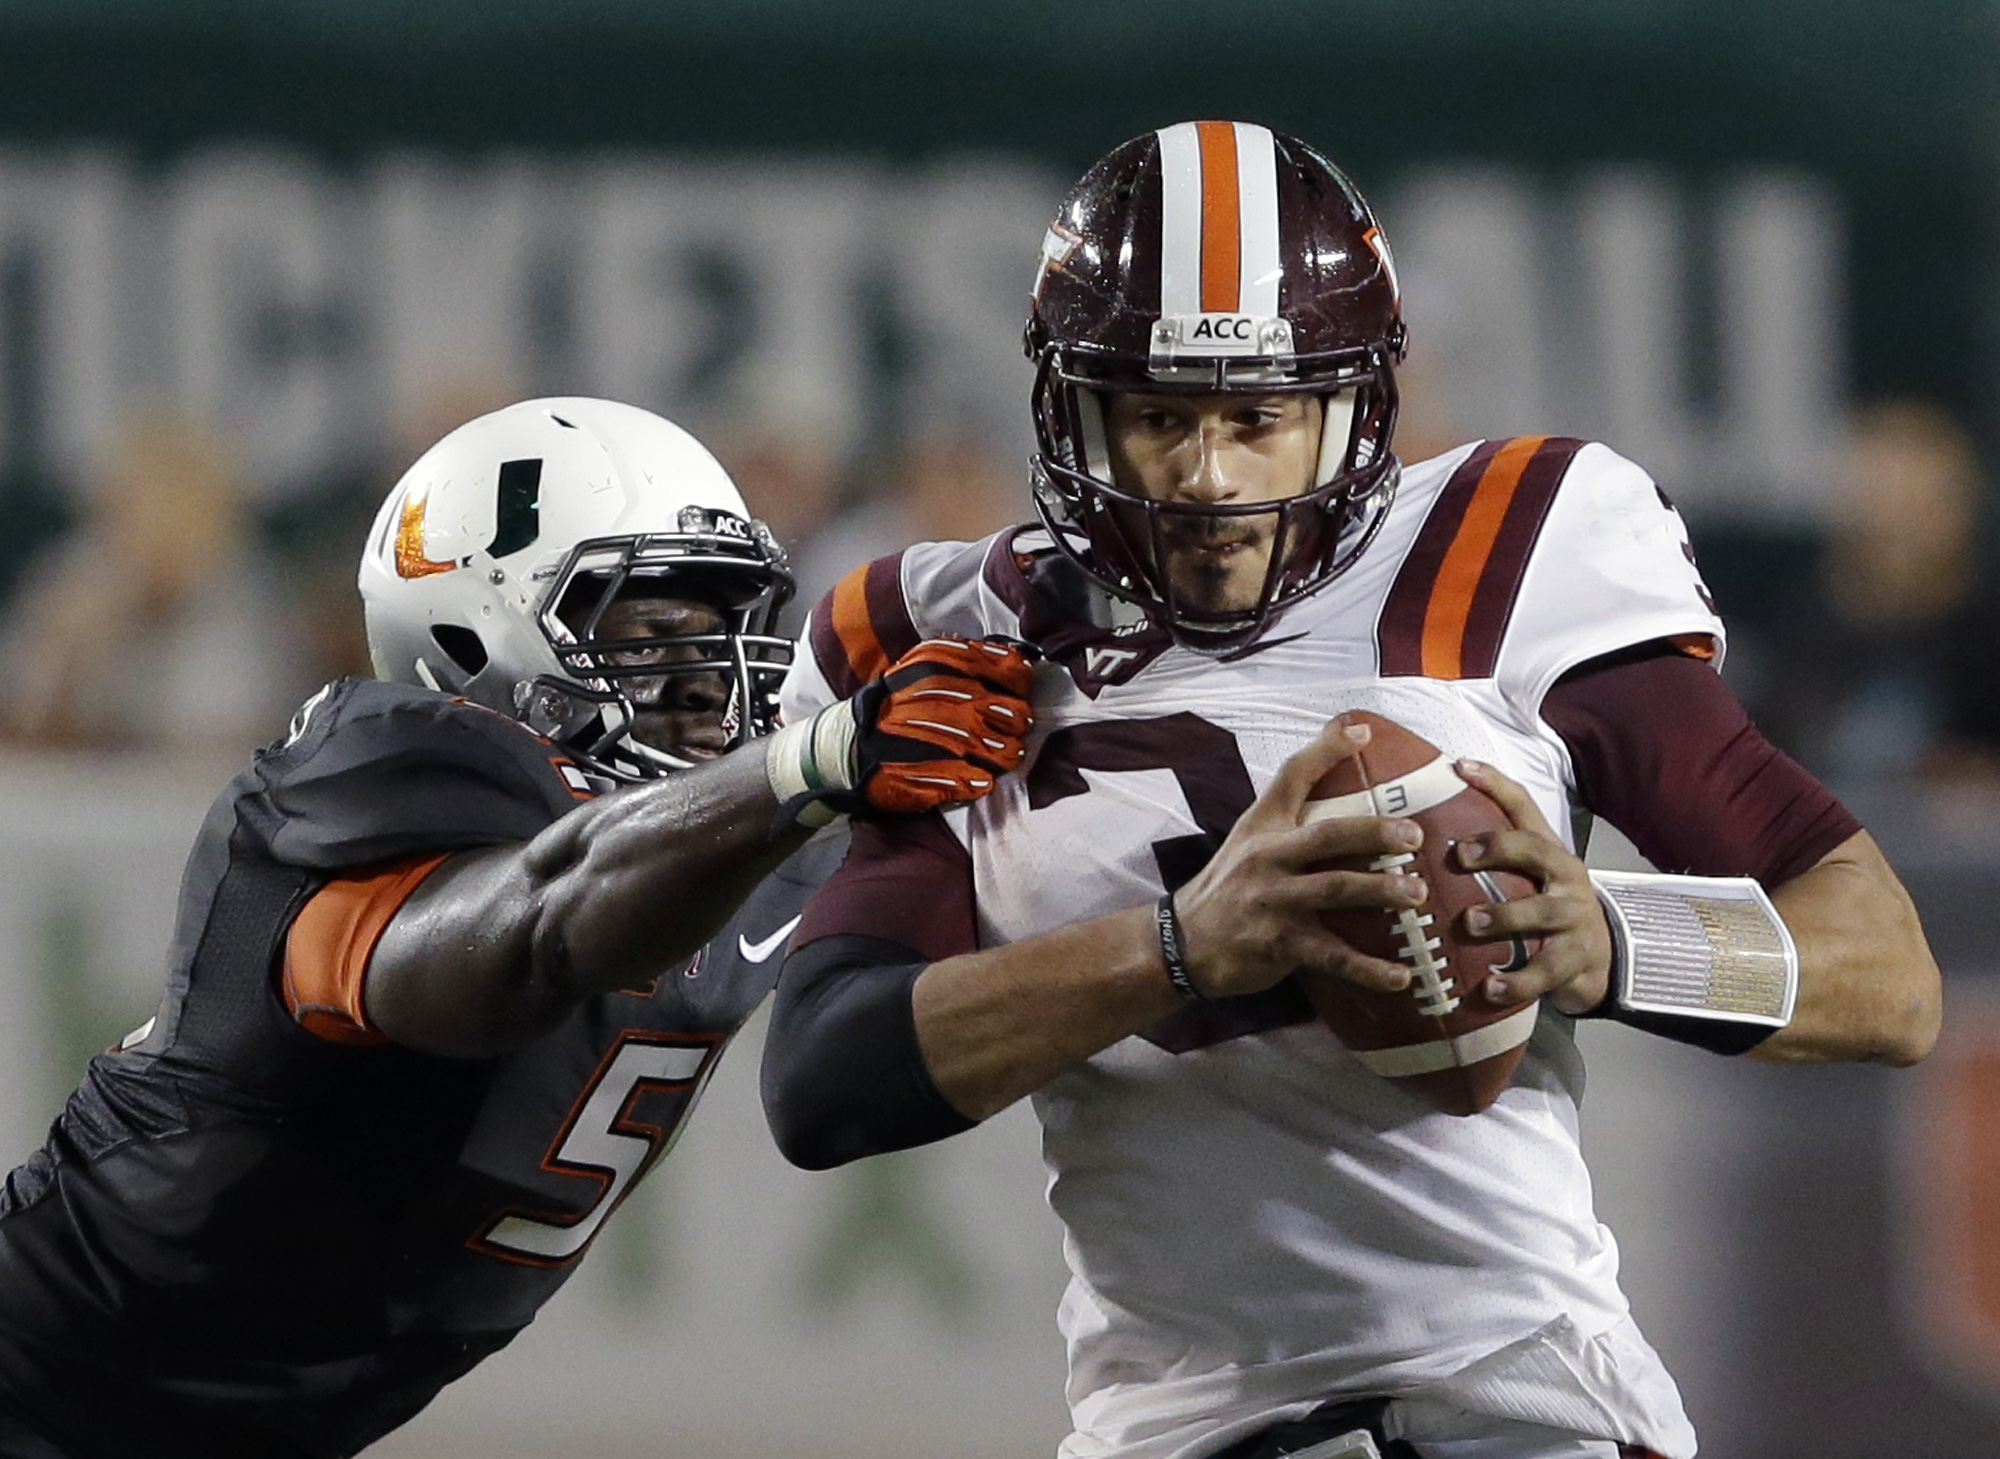 Hokies look to finish strong vs Maryland